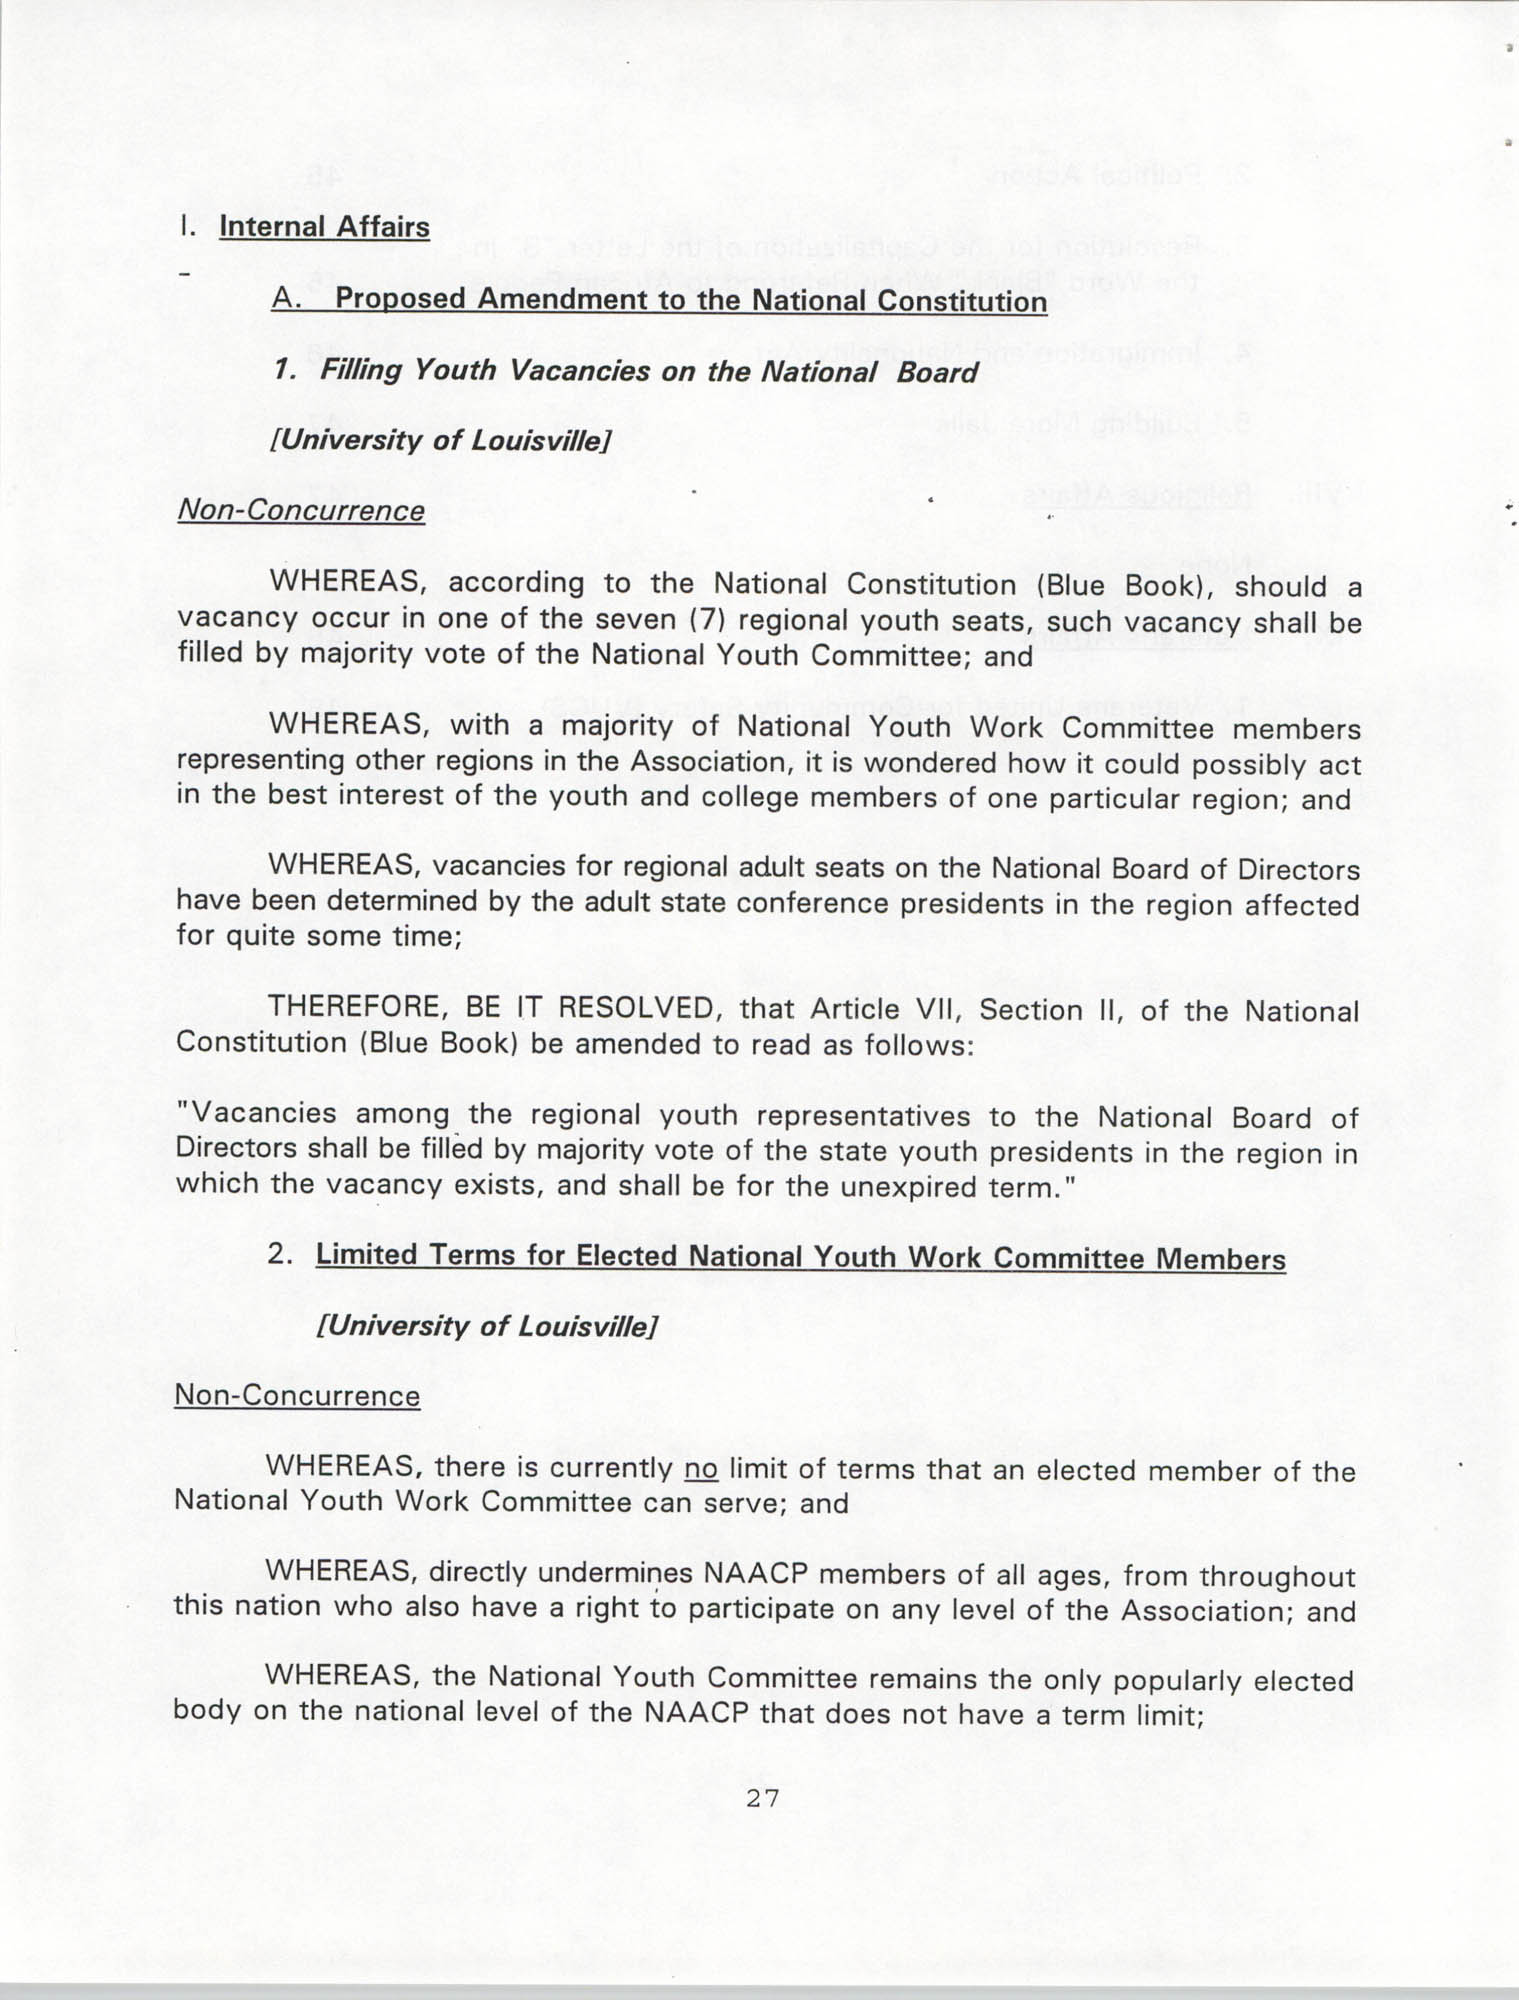 Resolutions Submitted Under Article X, Section 2 of the Constitution of the NAACP, 1994, Page 27